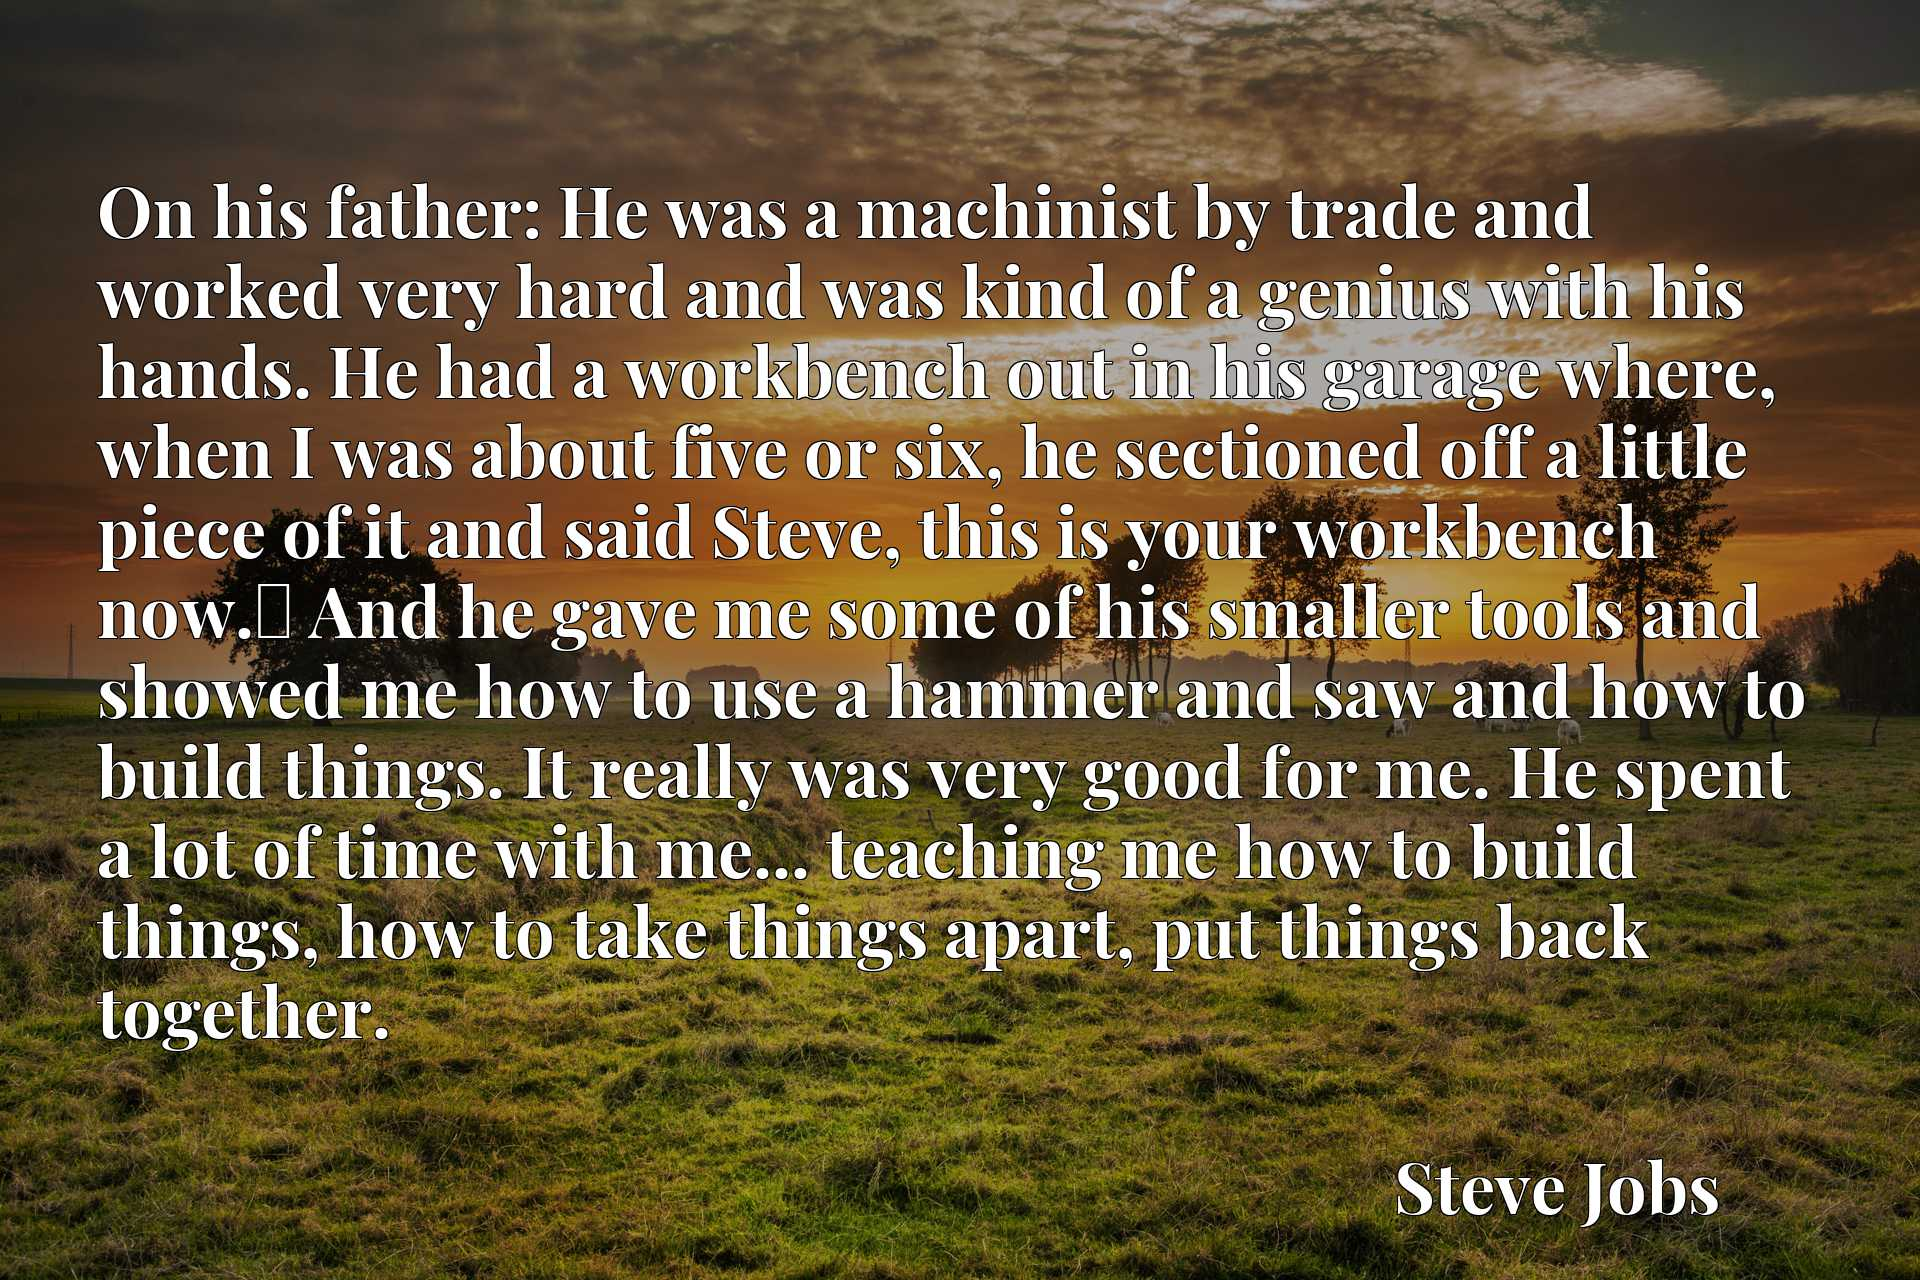 On his father: He was a machinist by trade and worked very hard and was kind of a genius with his hands. He had a workbench out in his garage where, when I was about five or six, he sectioned off a little piece of it and said Steve, this is your workbench now.x9d And he gave me some of his smaller tools and showed me how to use a hammer and saw and how to build things. It really was very good for me. He spent a lot of time with me... teaching me how to build things, how to take things apart, put things back together.